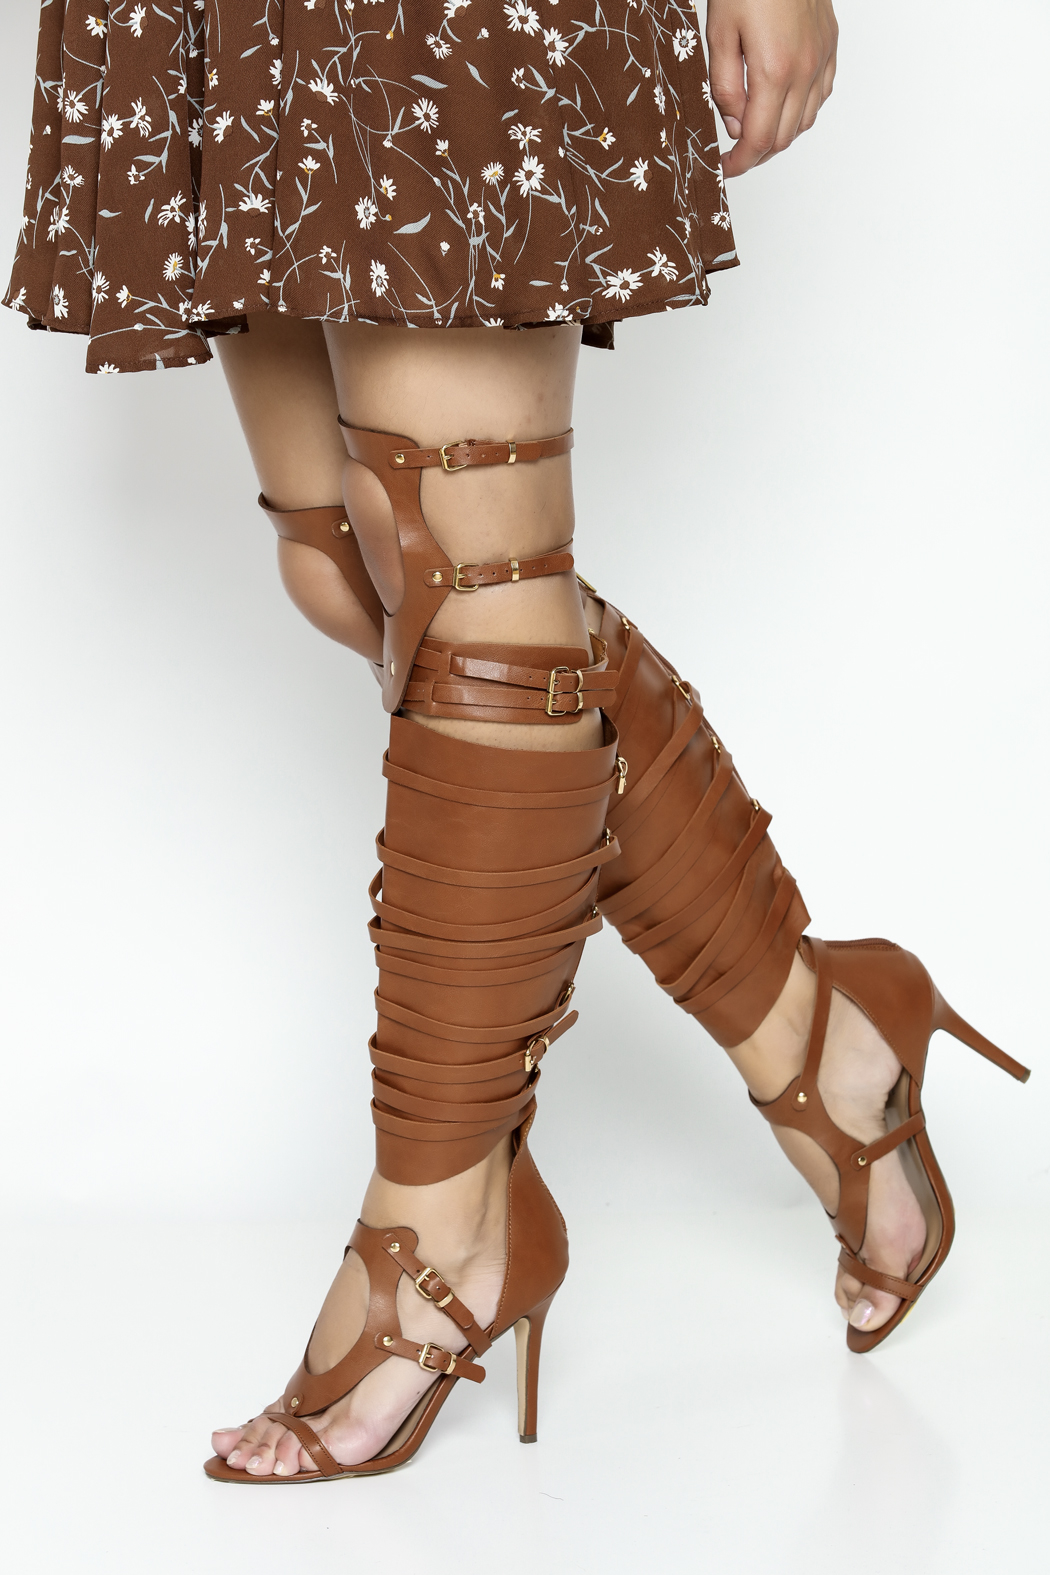 4905ab3bbe9 Breckelle s Tan Gladiator Heels from Michigan by Javahs Fashion Cafe ...